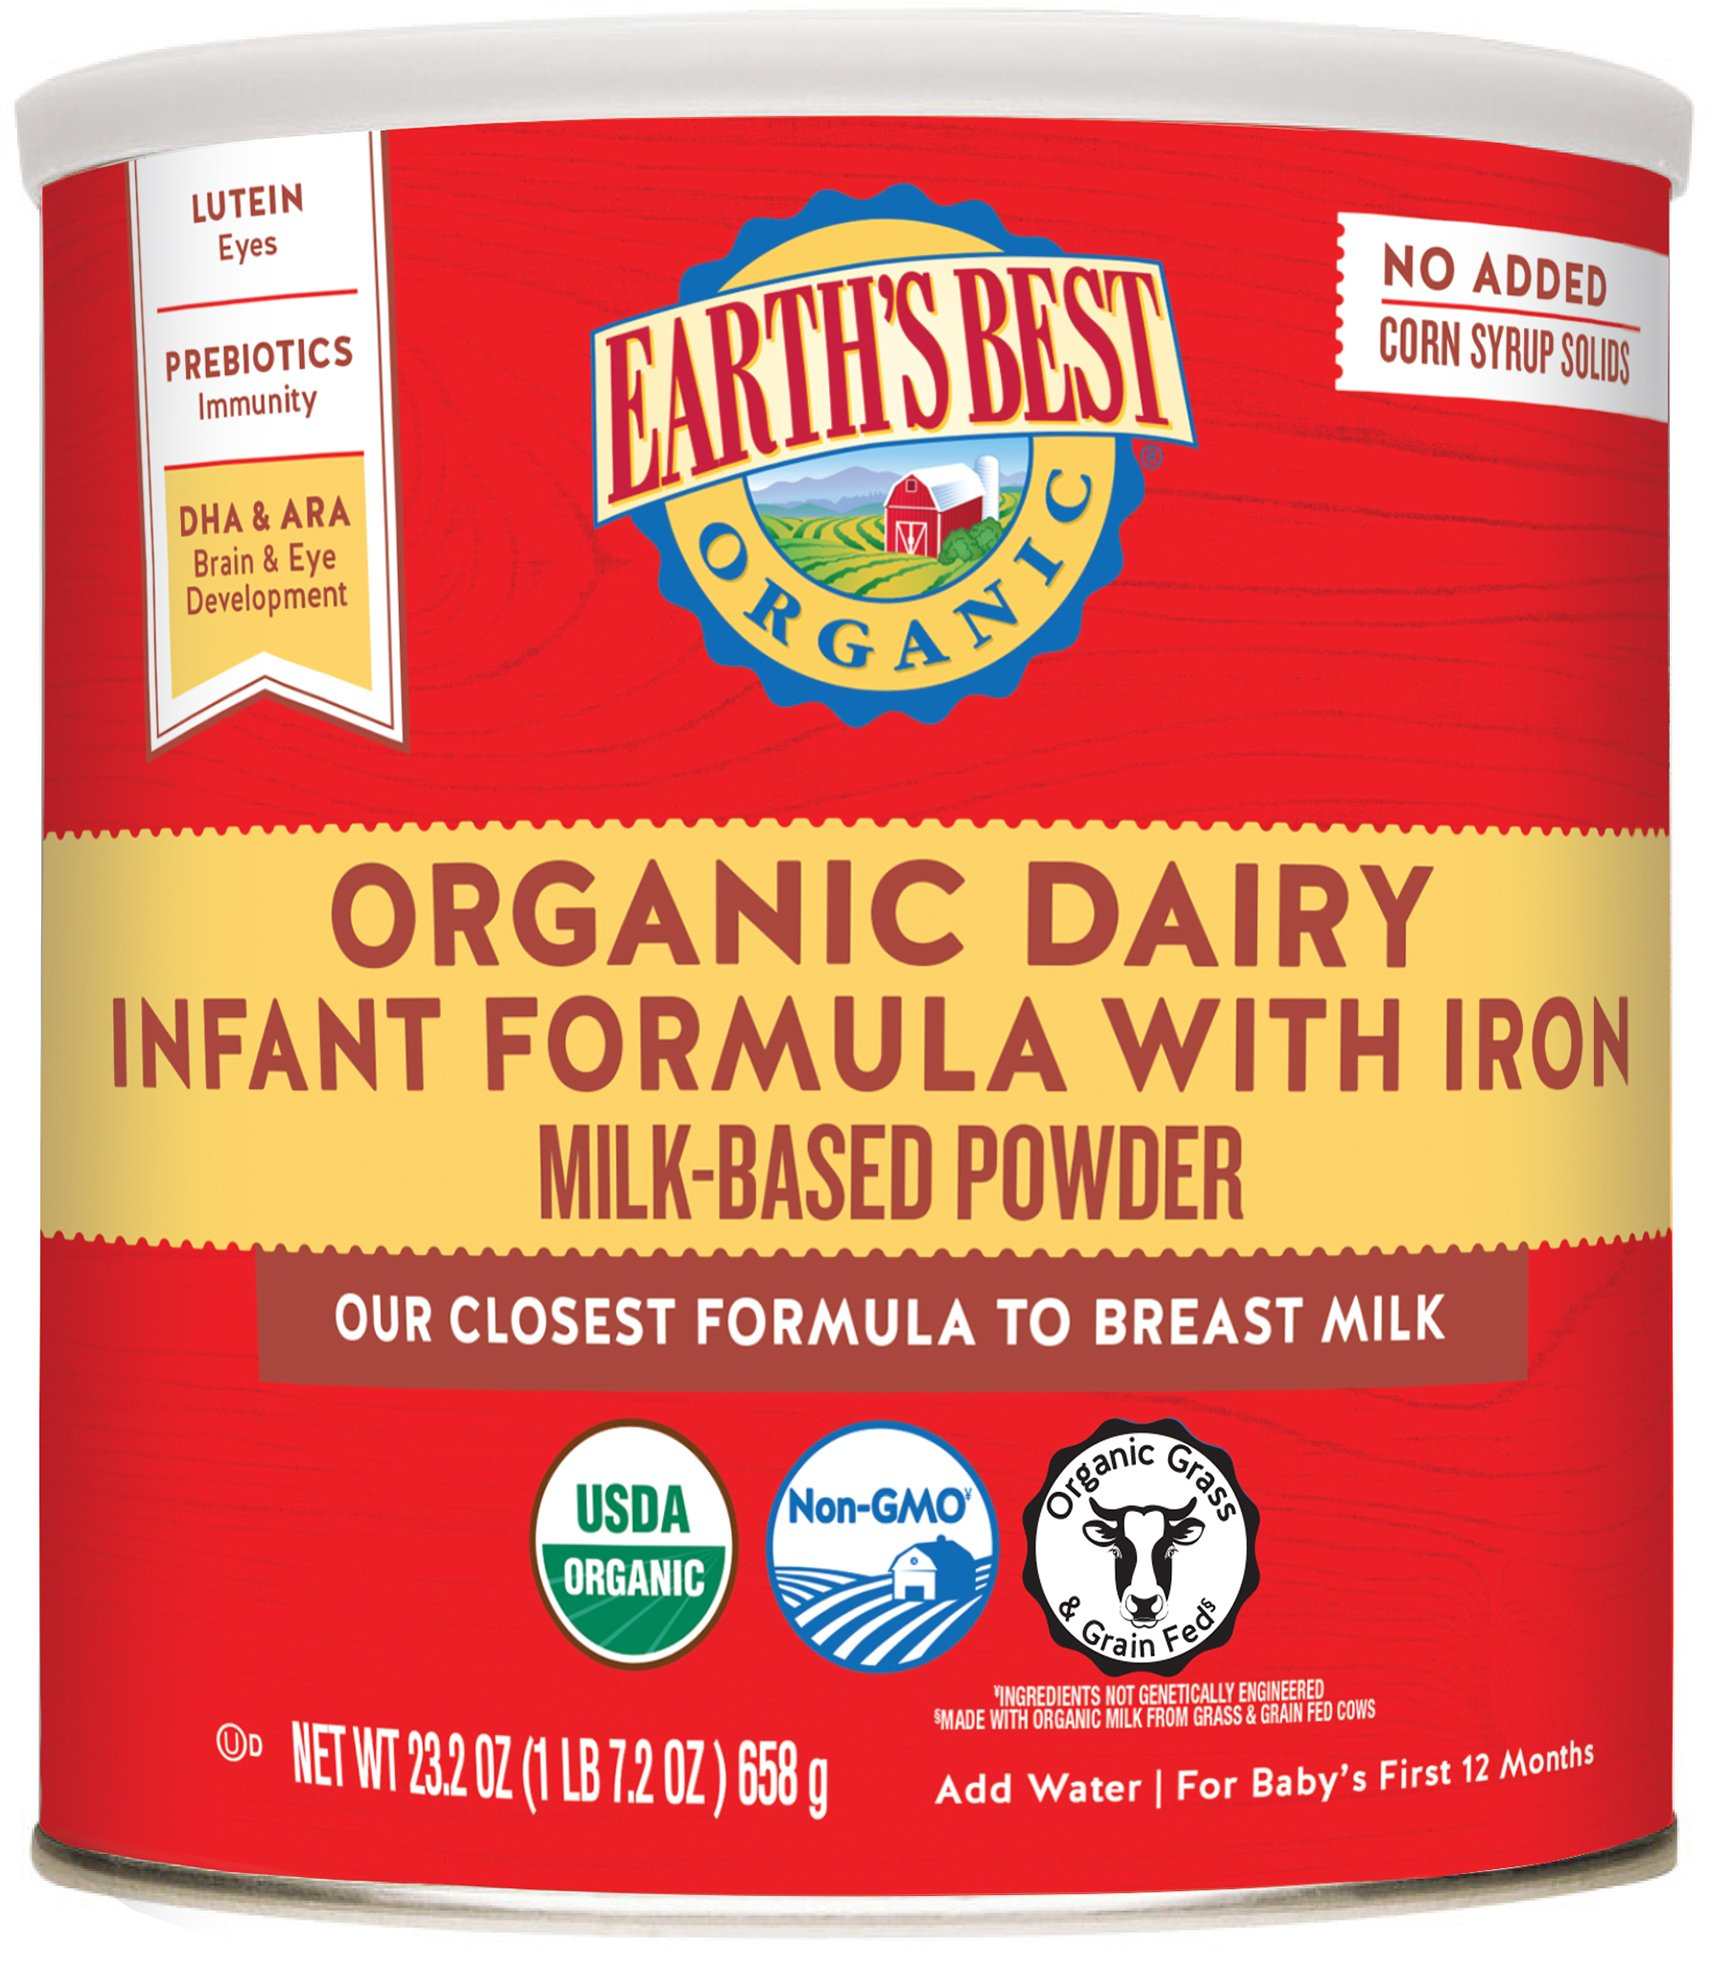 Earth's Best Organic Premium Dairy Infant Formula with Iron, 23.2 Ounce (Pack of 4)